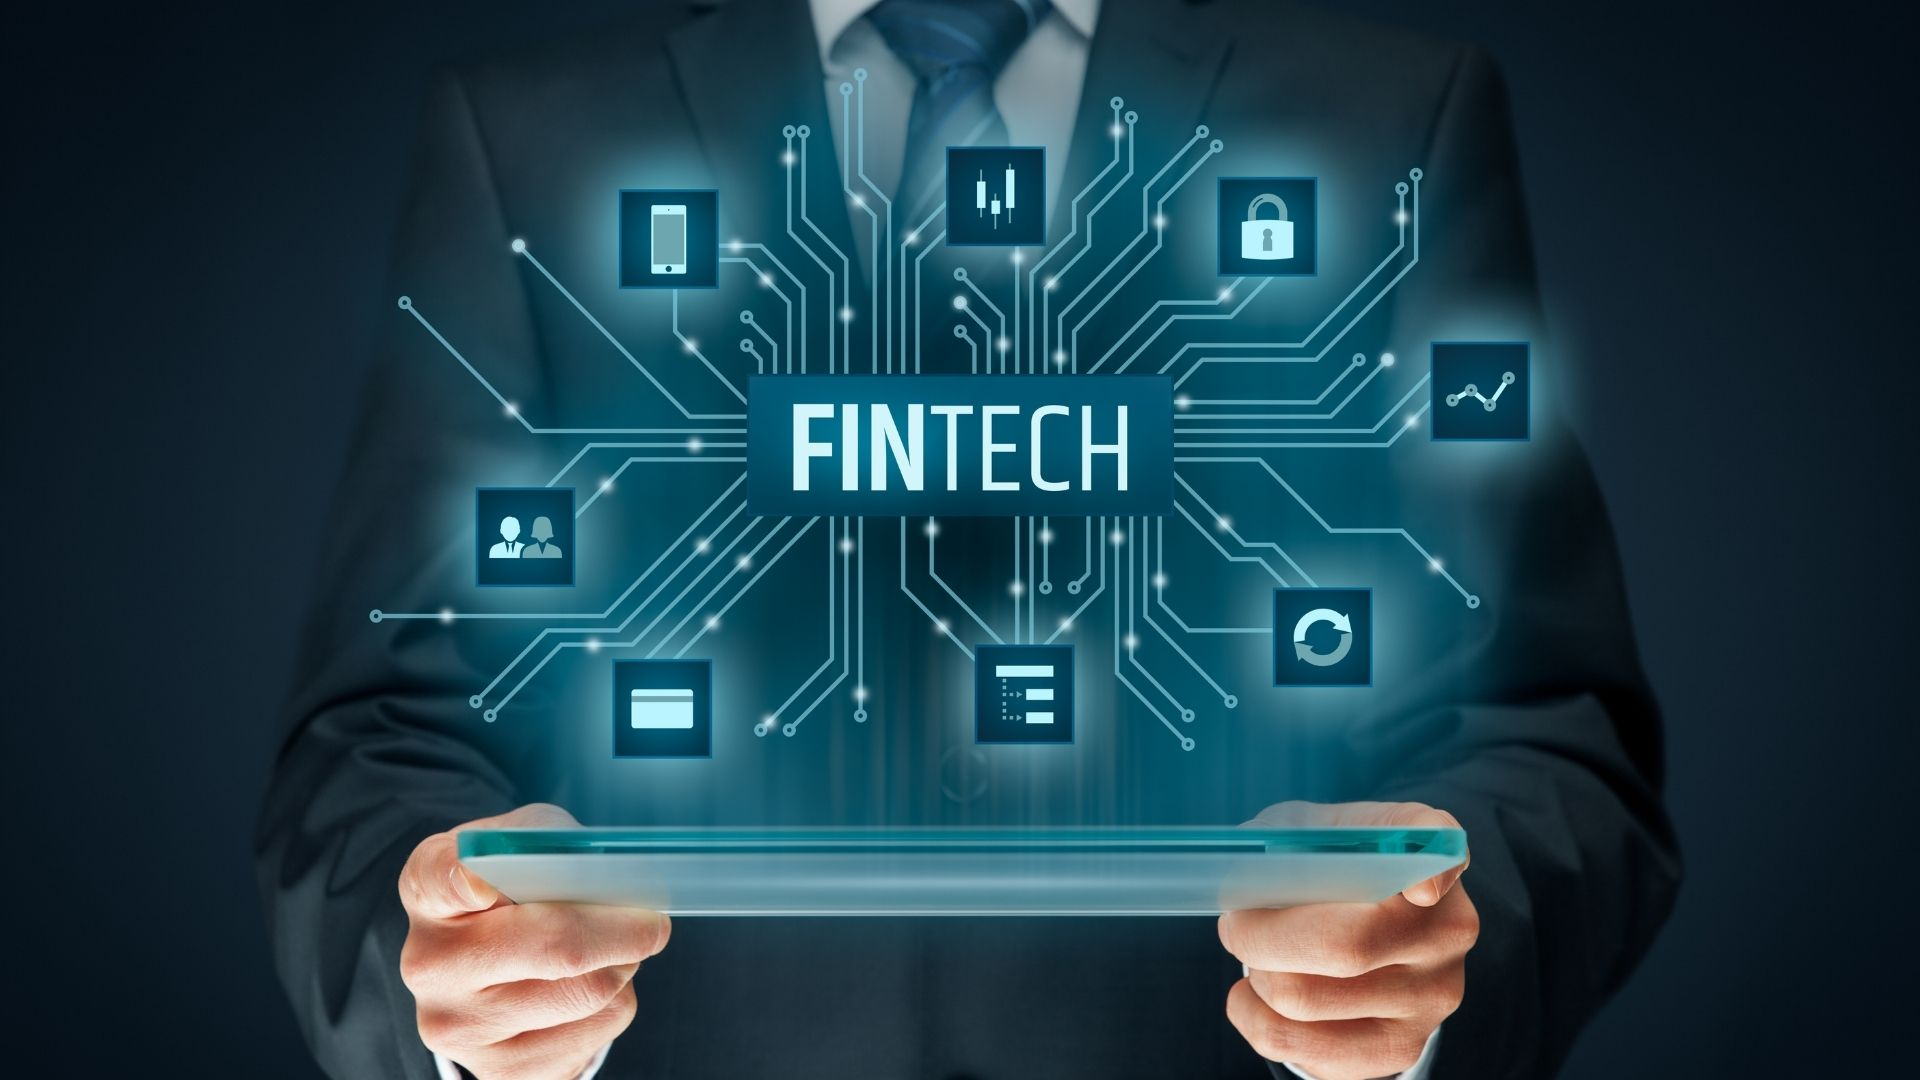 Tackling Covid-19 and Brexit - fintech innovation is key 33